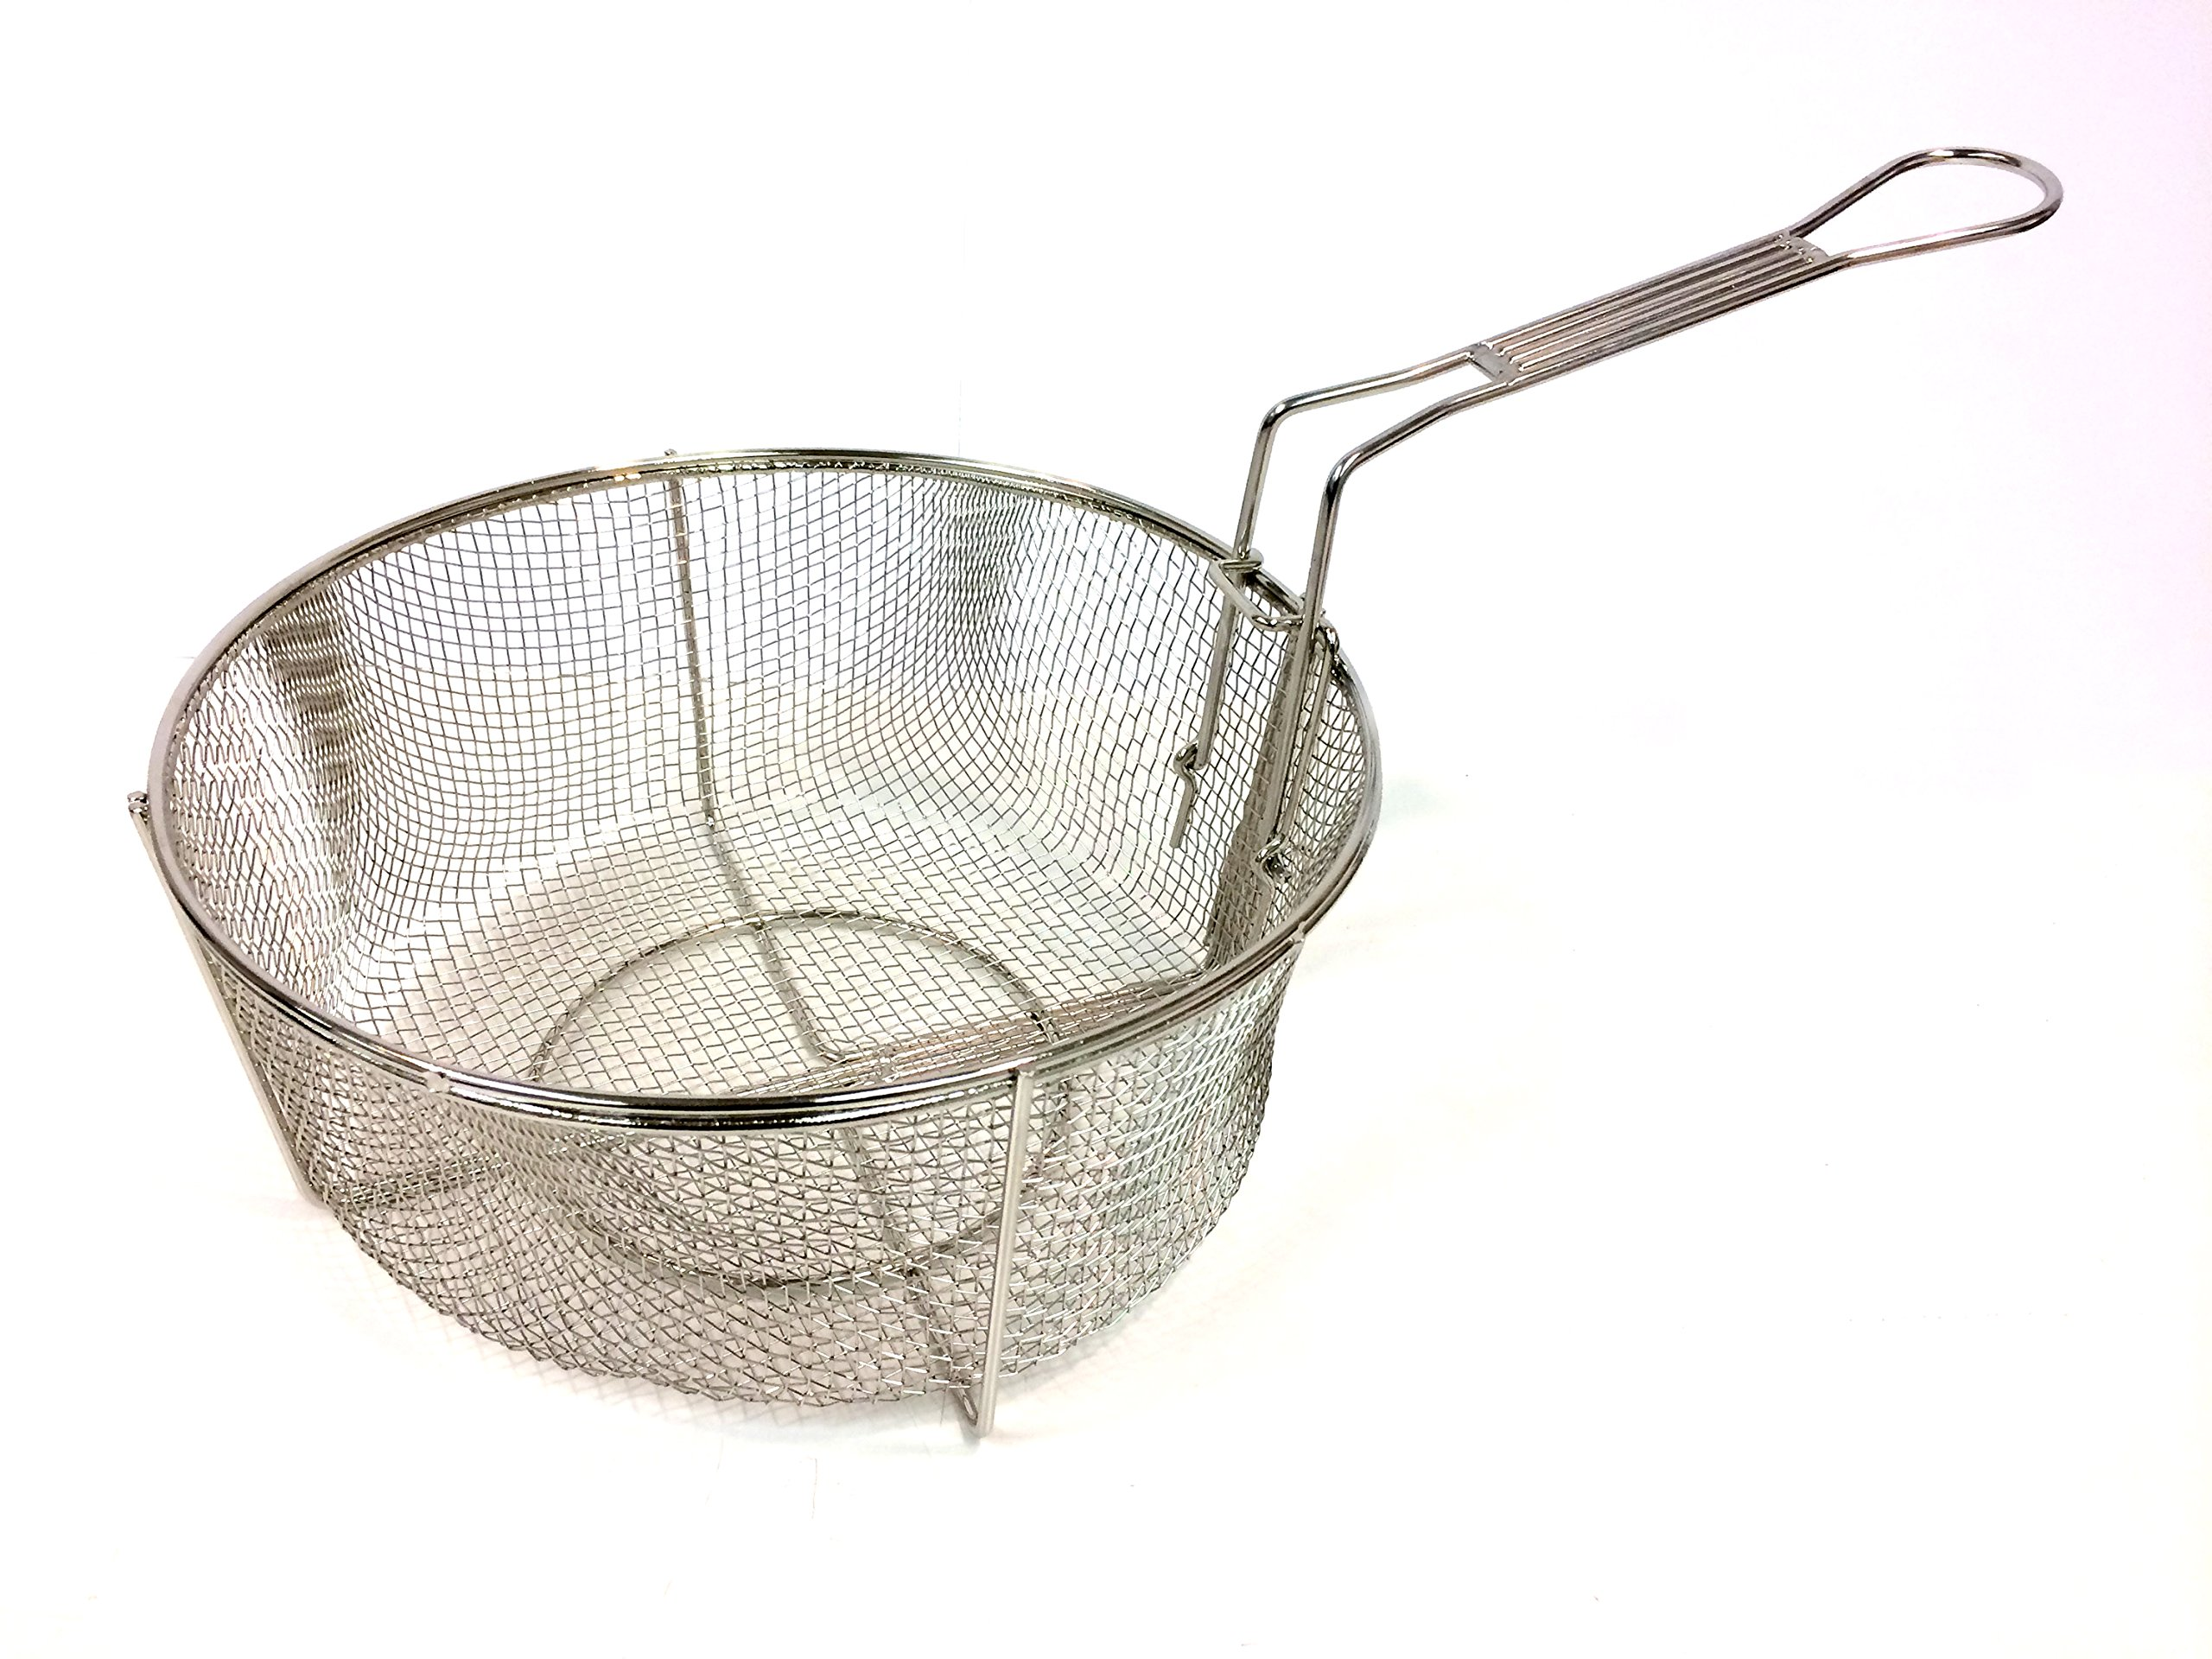 Bayou Classic 126 Nickel Plated Wire Mesh Fry Basket, 12'' by Bayou Classic